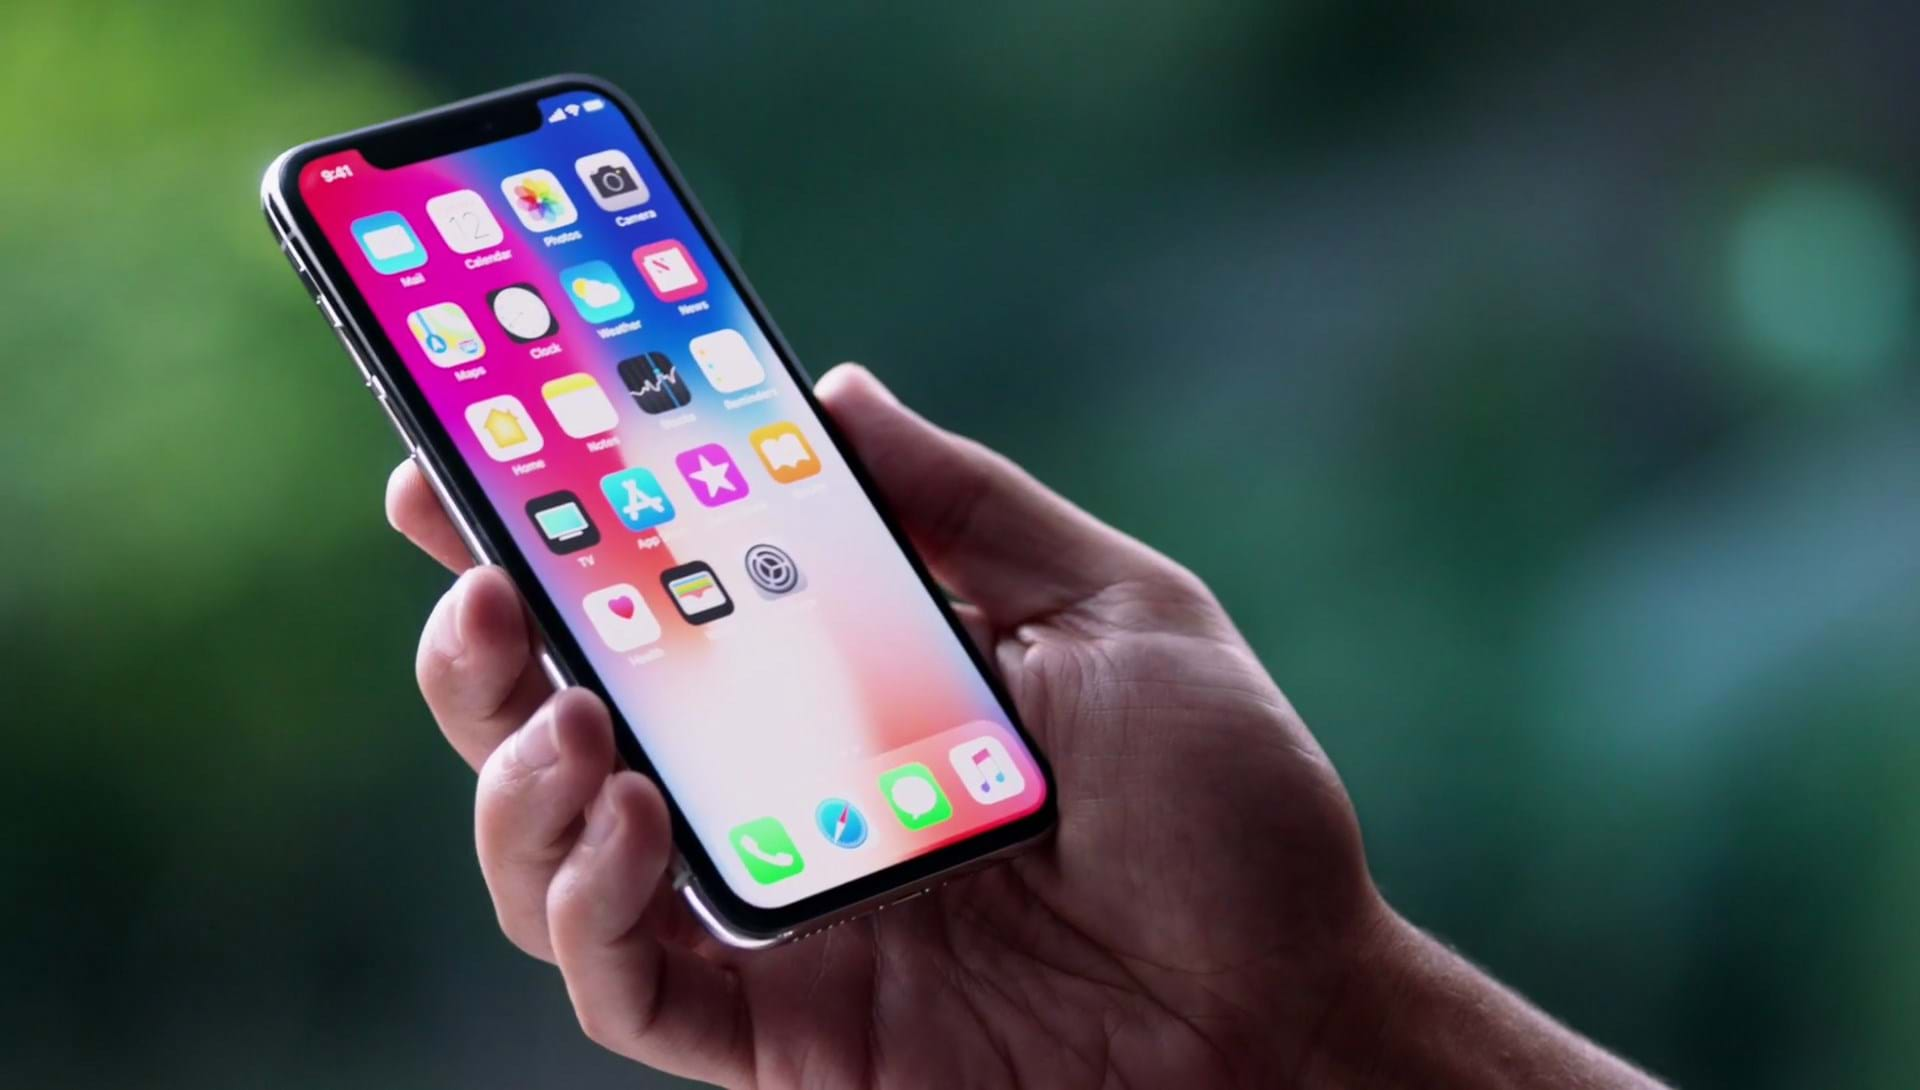 apple-iphone-x-review-hands-on-11.jpg